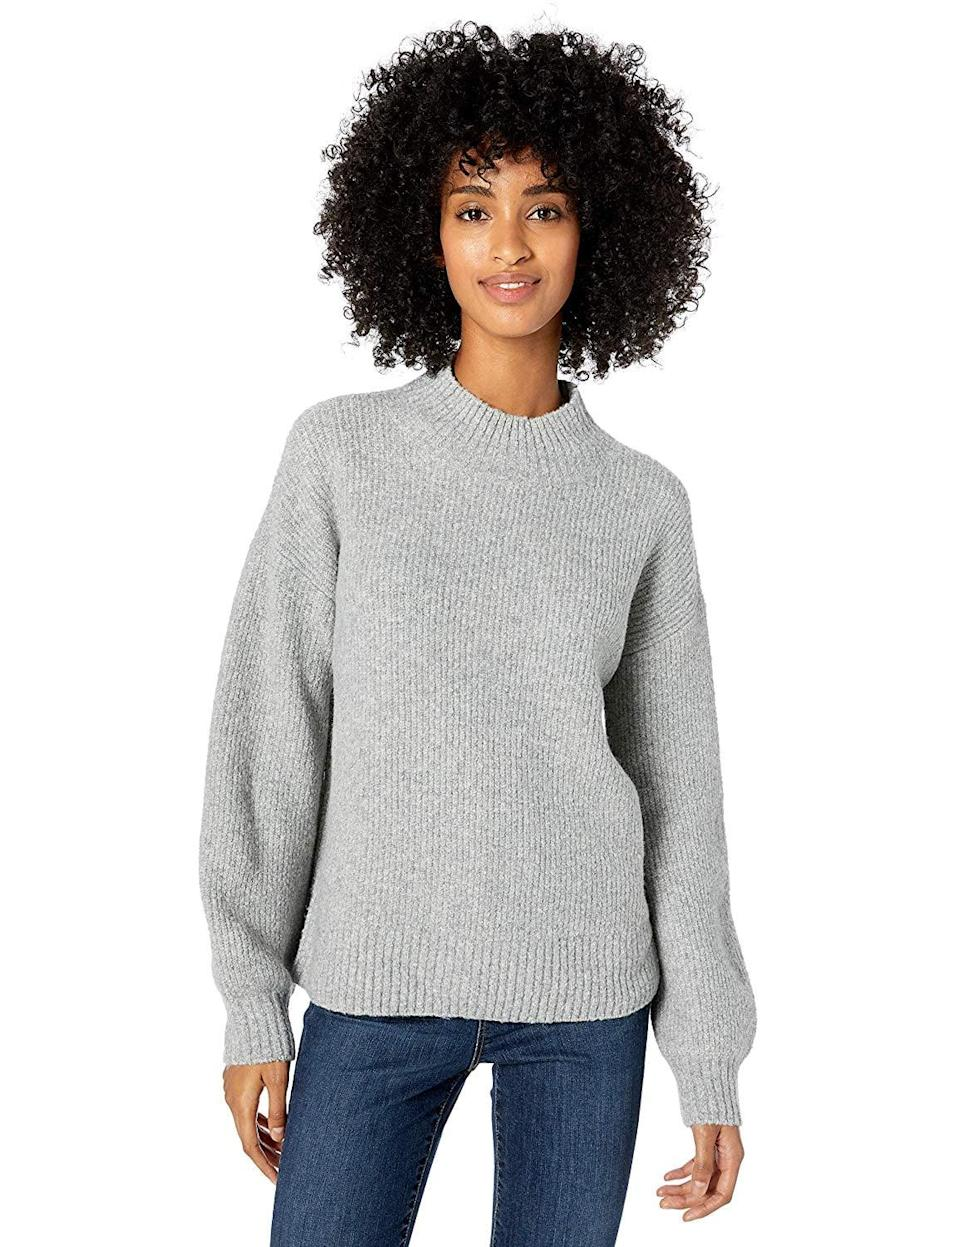 """<p>I just got this <a href=""""https://www.popsugar.com/buy/Goodthreads-Boucle-Shaker-Stitch-Balloon-Sleeve-Sweater-537499?p_name=Goodthreads%20Boucle%20Shaker%20Stitch%20Balloon-Sleeve%20Sweater&retailer=amazon.com&pid=537499&price=32&evar1=fab%3Aus&evar9=47112645&evar98=https%3A%2F%2Fwww.popsugar.com%2Ffashion%2Fphoto-gallery%2F47112645%2Fimage%2F47112914%2FGoodthreads-Boucle-Shaker-Stitch-Balloon-Sleeve-Sweater&list1=shopping%2Camazon%2Ctops%2Cwinter%20fashion&prop13=api&pdata=1"""" class=""""link rapid-noclick-resp"""" rel=""""nofollow noopener"""" target=""""_blank"""" data-ylk=""""slk:Goodthreads Boucle Shaker Stitch Balloon-Sleeve Sweater"""">Goodthreads Boucle Shaker Stitch Balloon-Sleeve Sweater</a> ($32) and love it so much, I want it in more colors. It's soft and not at all itchy - I'll be wearing it 24/7.</p>"""